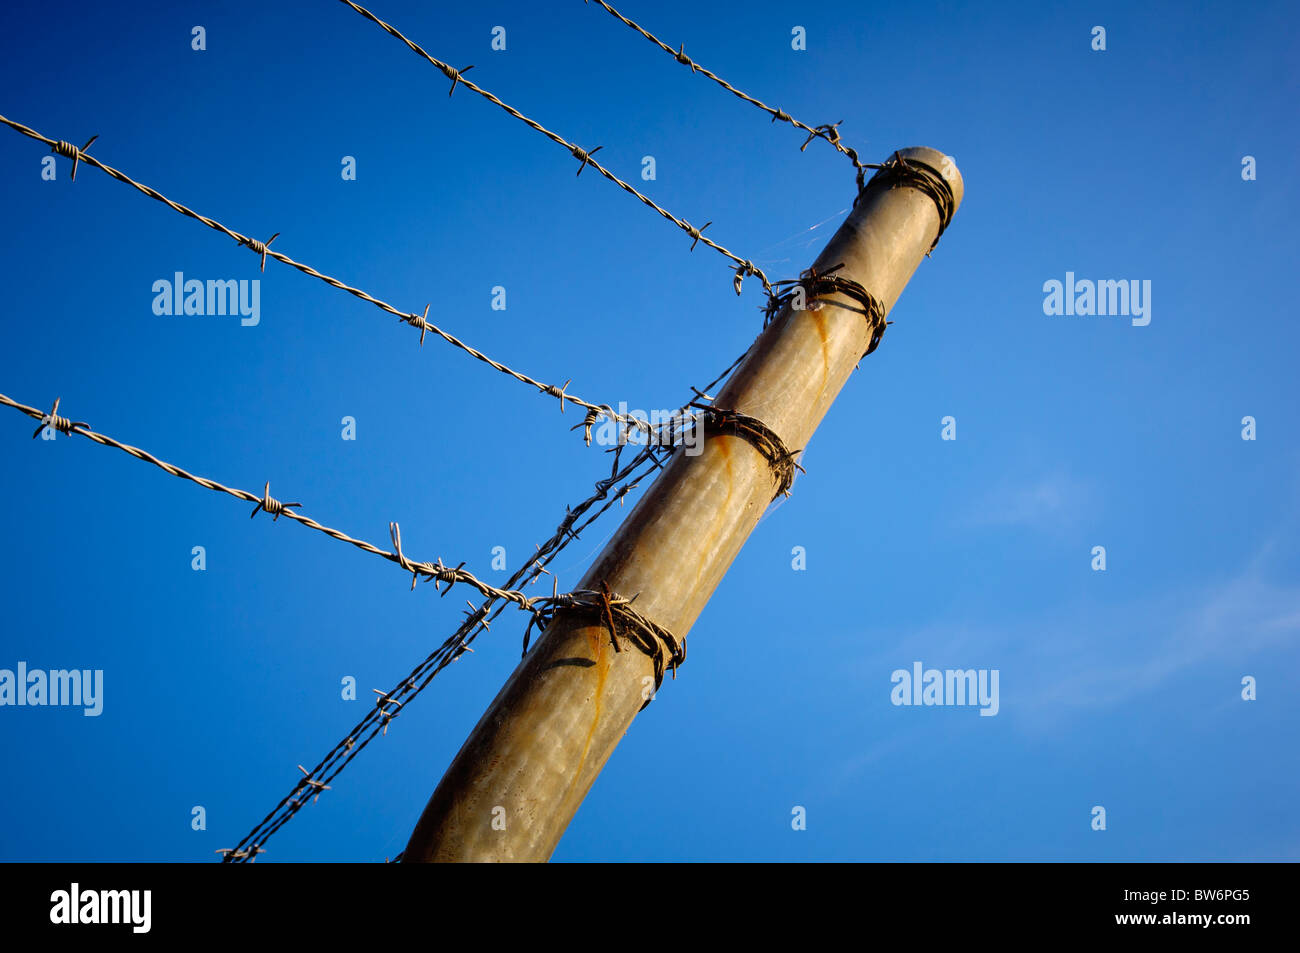 Fence posts with barbed wire running across it against a blue sky - Stock Image